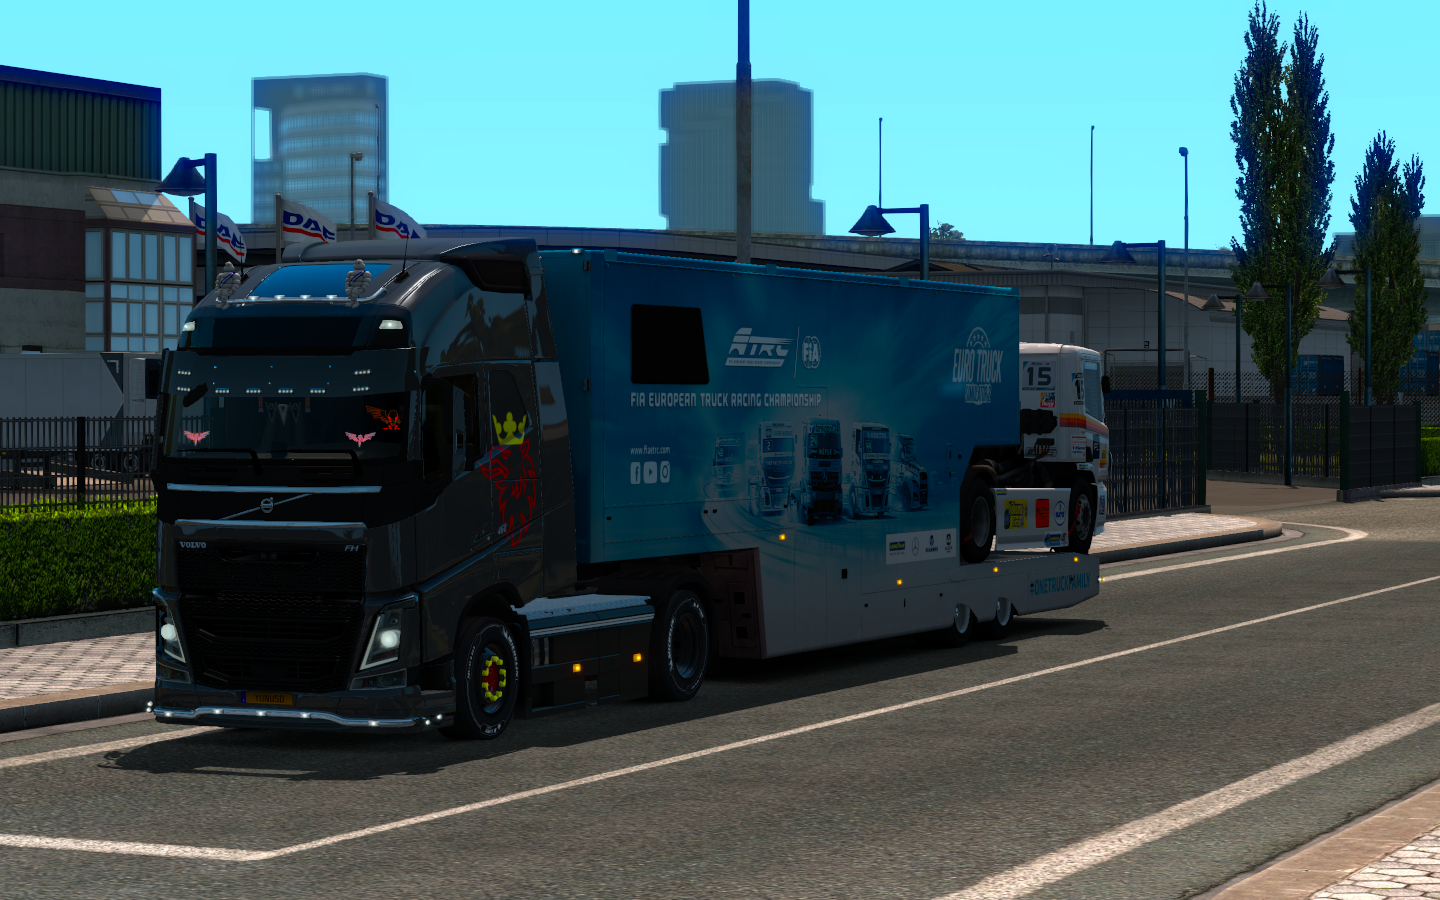 ets2_20190322_180501_00.png